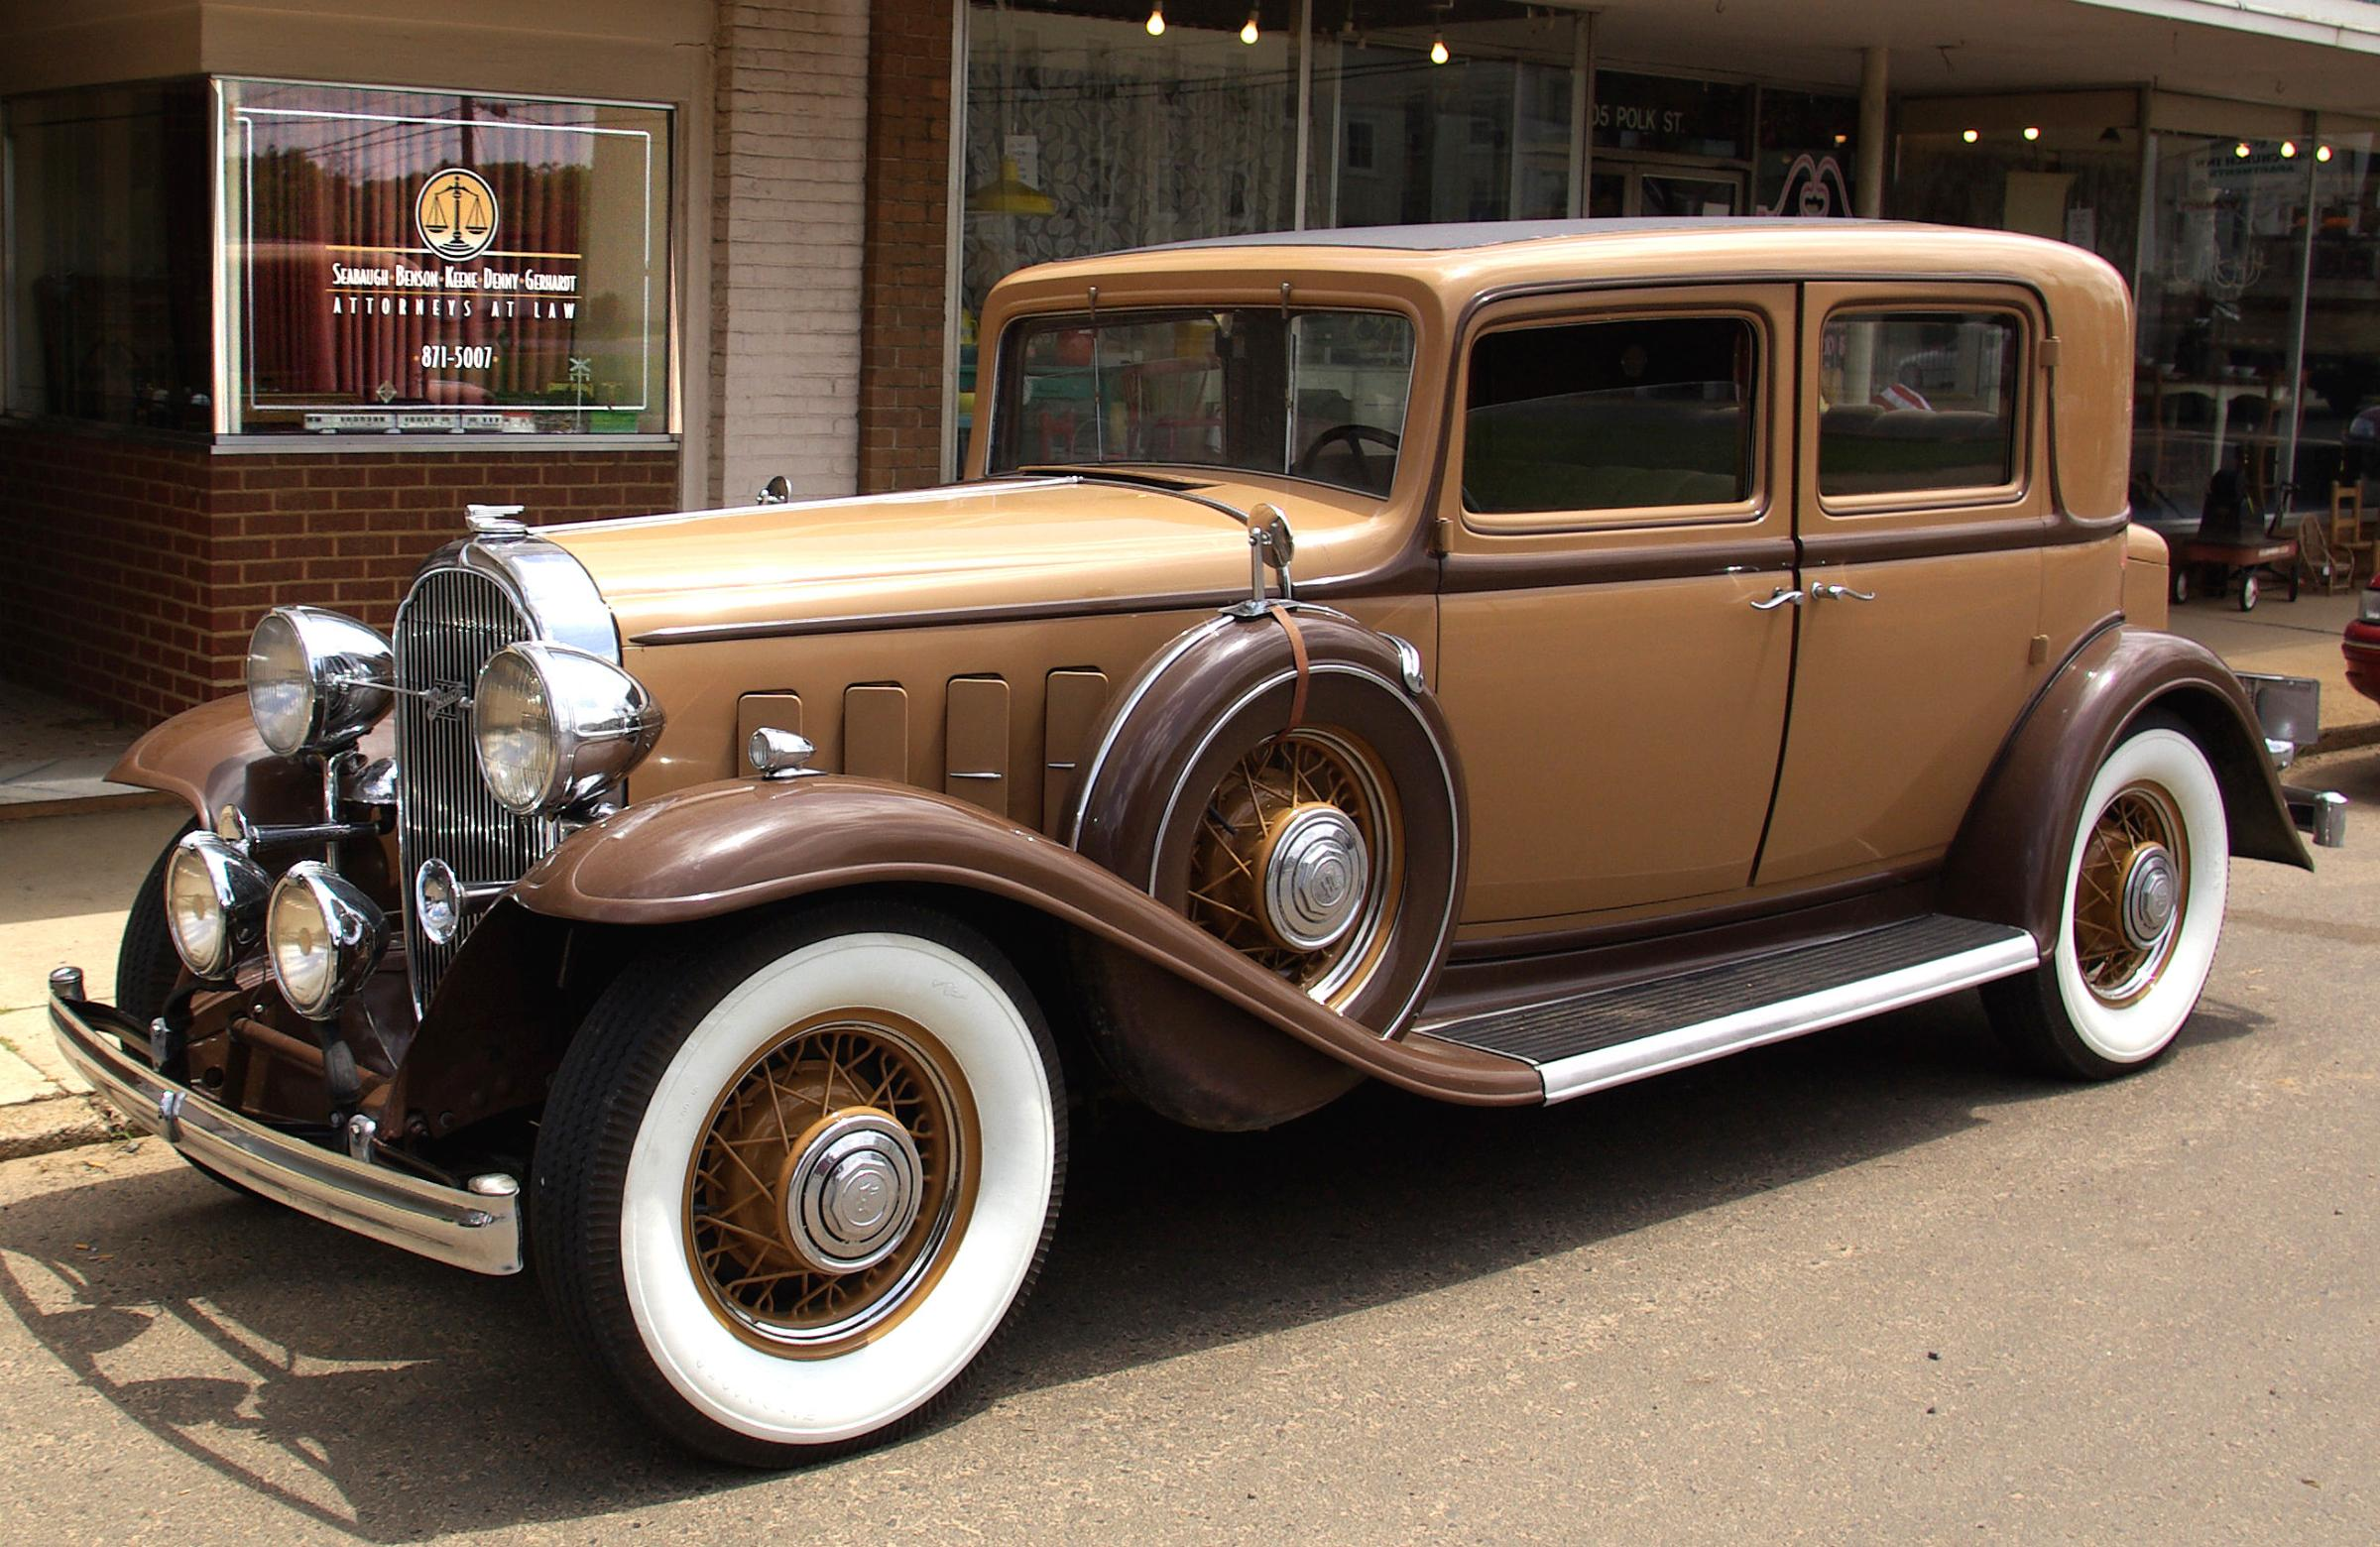 Antique Cars for Sale Near Me Best Of Classic and Antique Cars Collection Used Antique Car